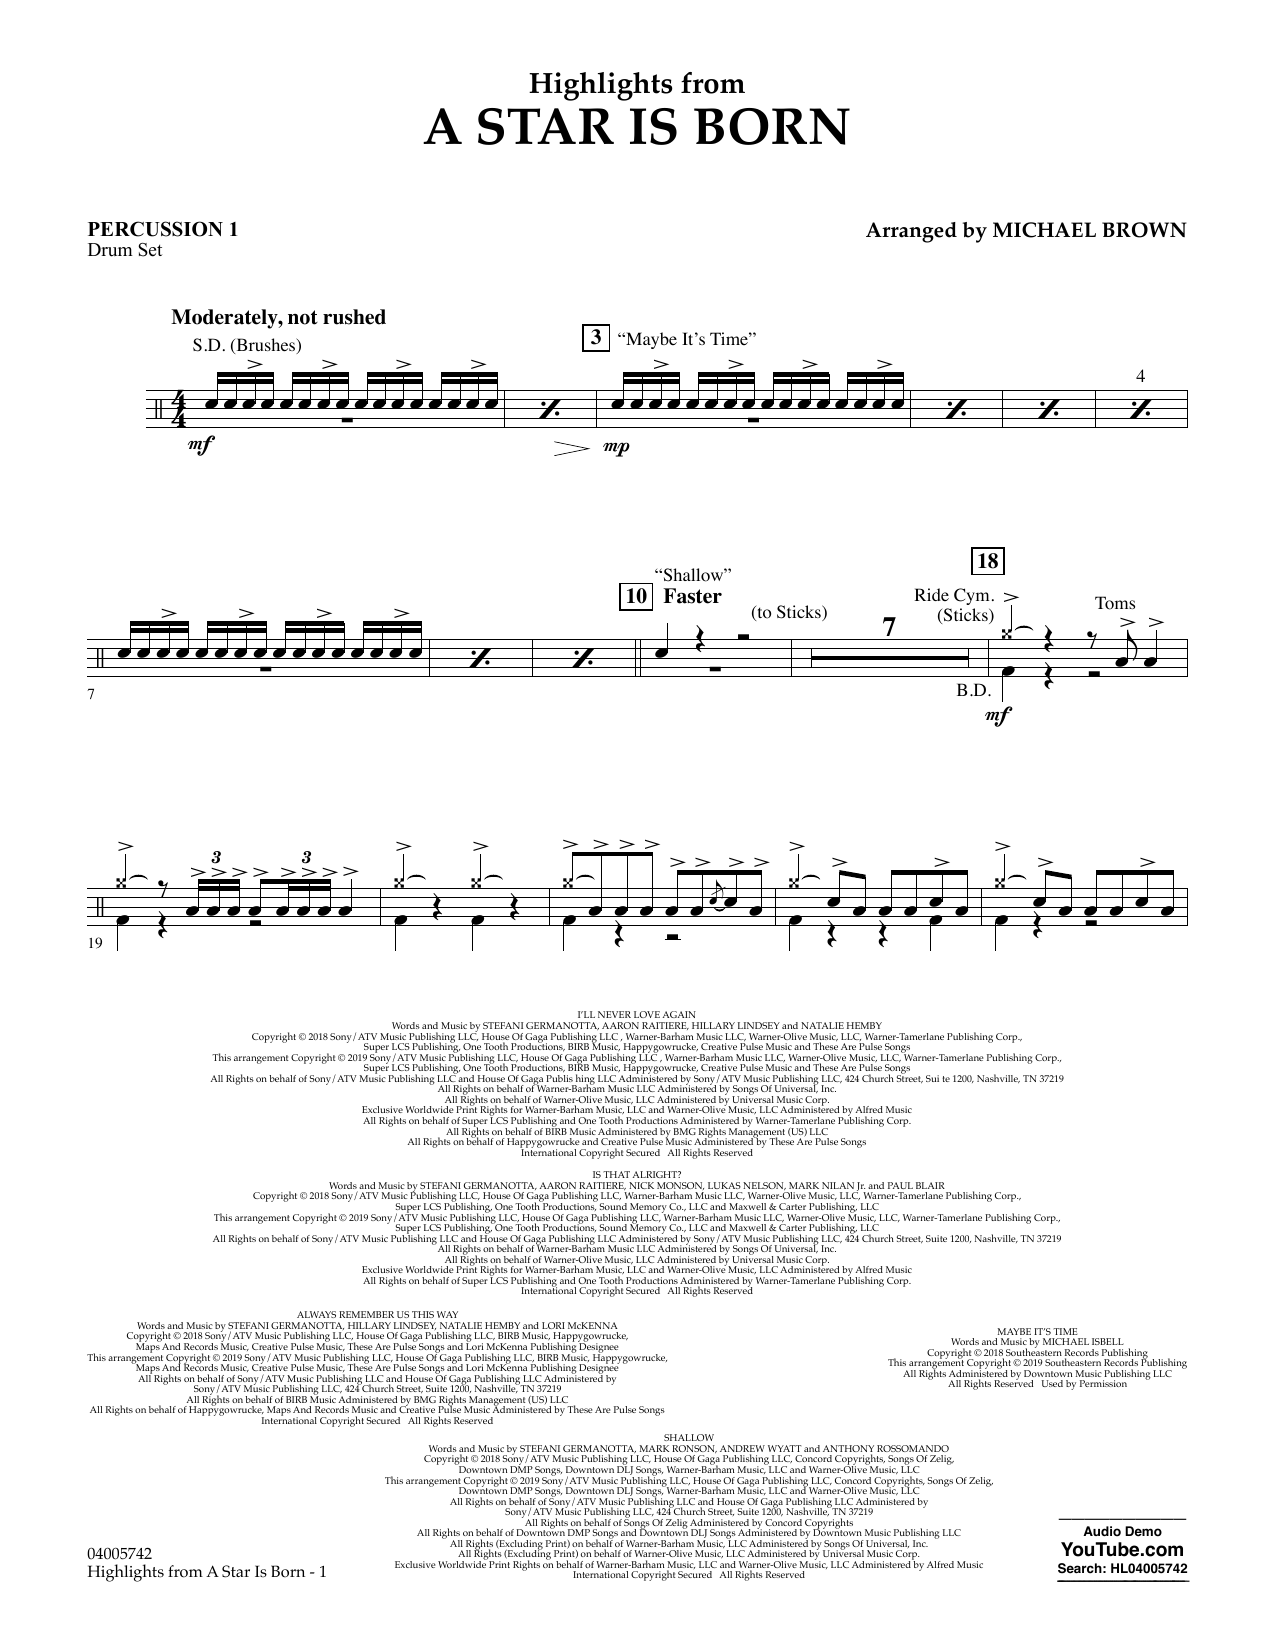 Highlights from A Star Is Born - Percussion 1 (Concert Band)